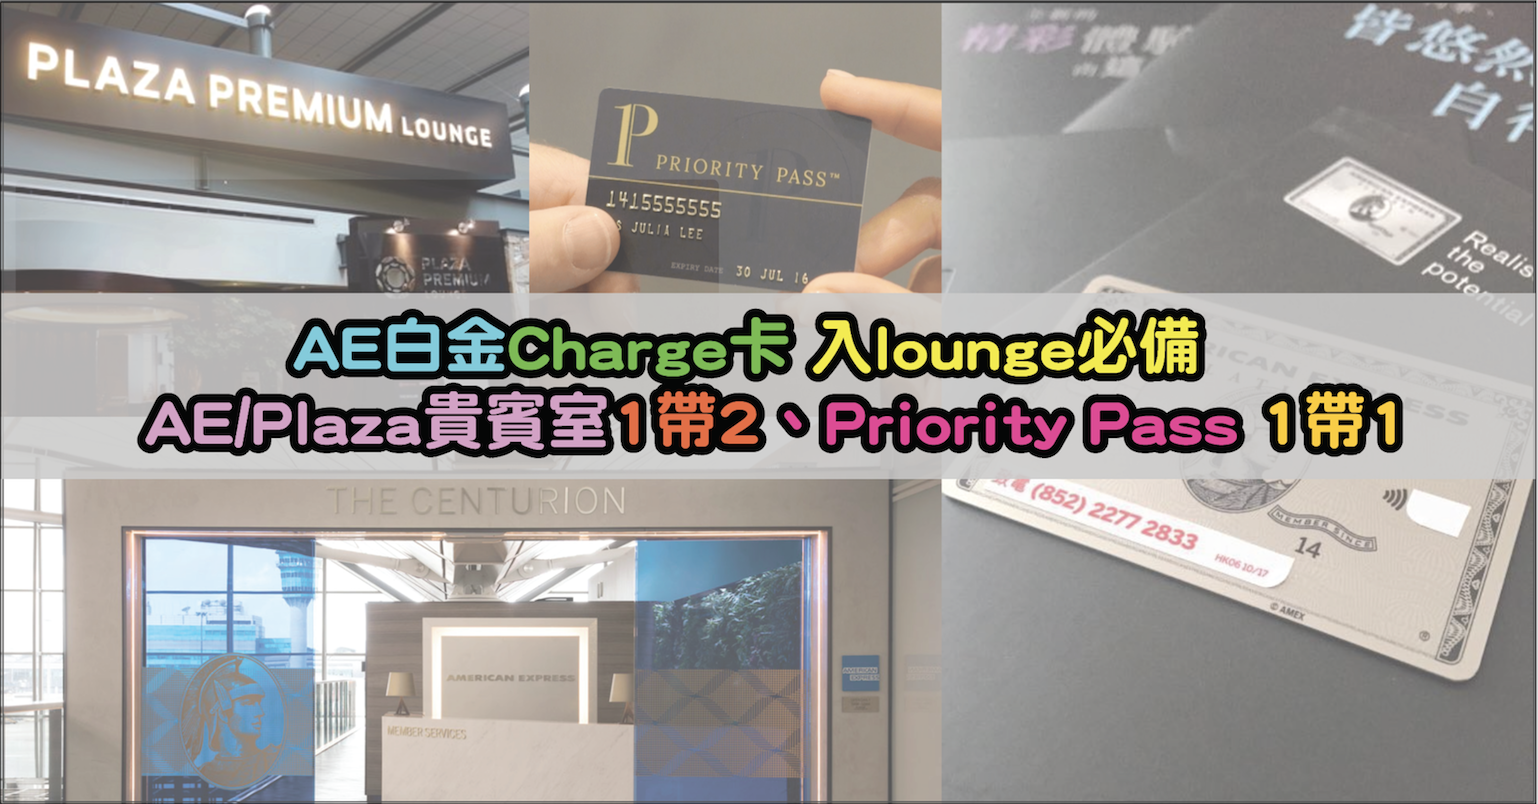 美國運通 AE白金Charge卡入Centurion lounge 貴賓室必備!AE/Plaza貴賓室1帶2、Priority Pass 1帶1!另加The American Express Global Lounge Collection 貴賓室!